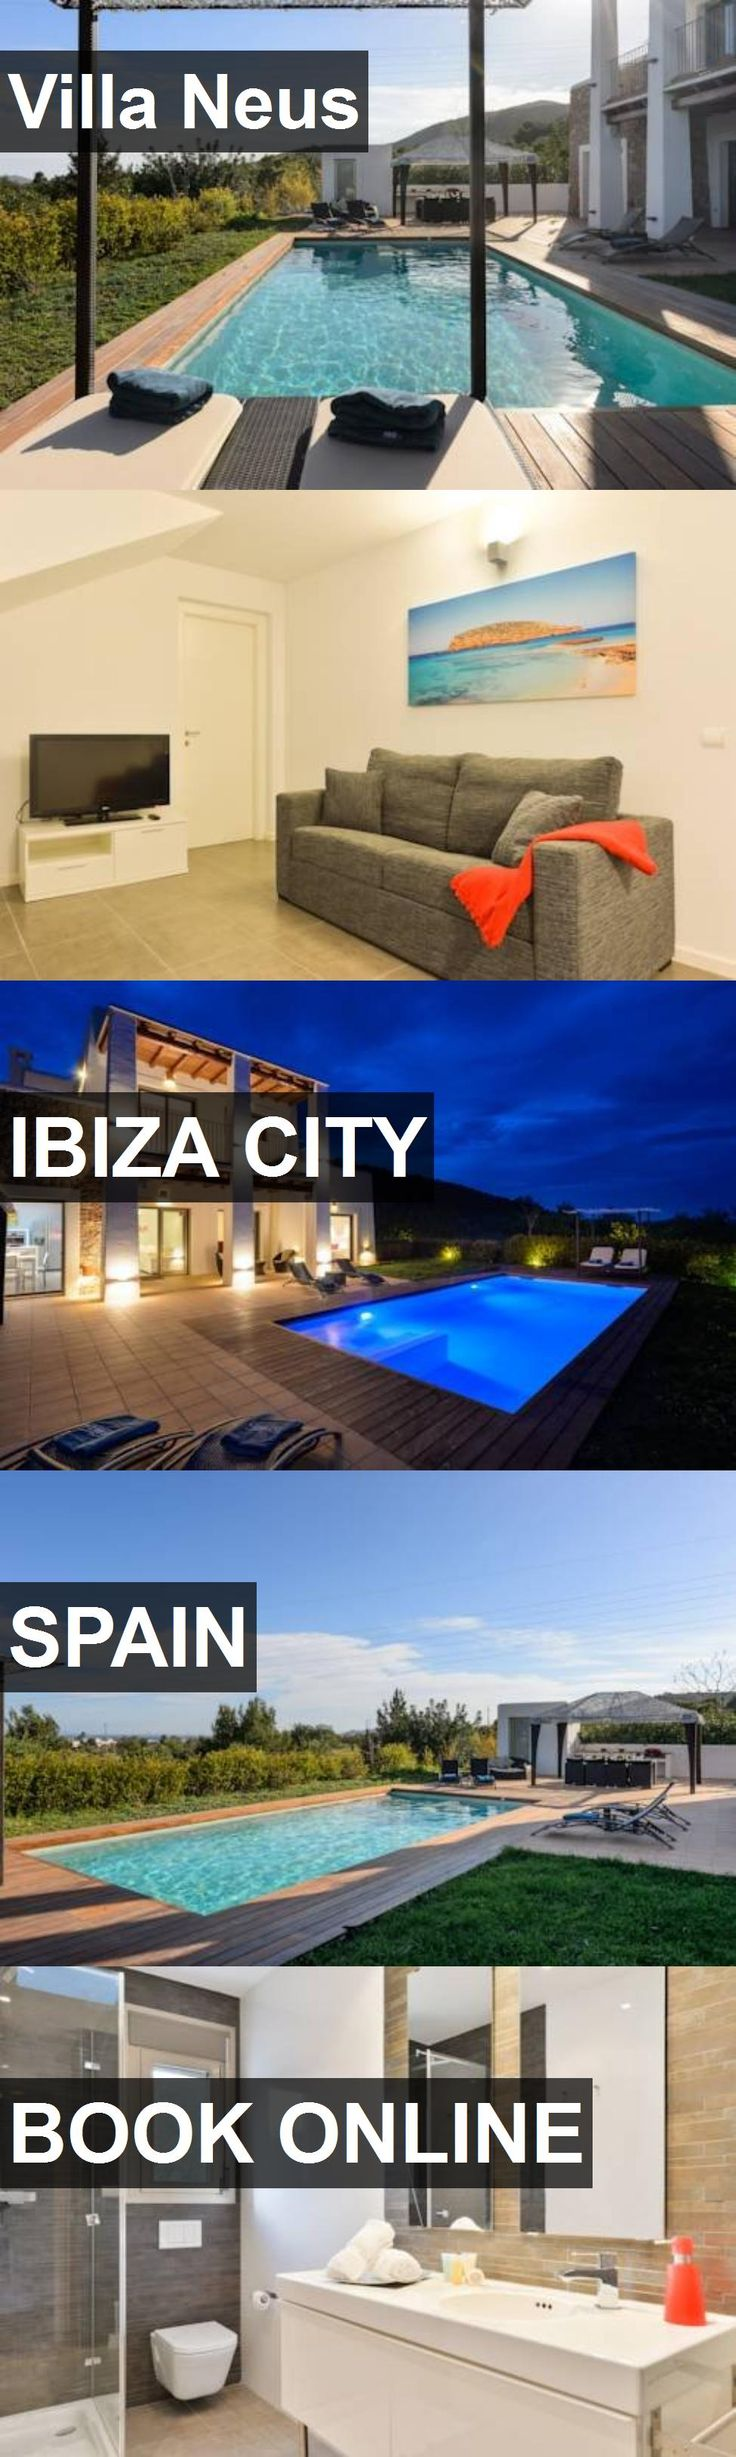 Hotel Villa Neus in Ibiza City, Spain. For more information, photos, reviews and best prices please follow the link. #Spain #IbizaCity #travel #vacation #hotel